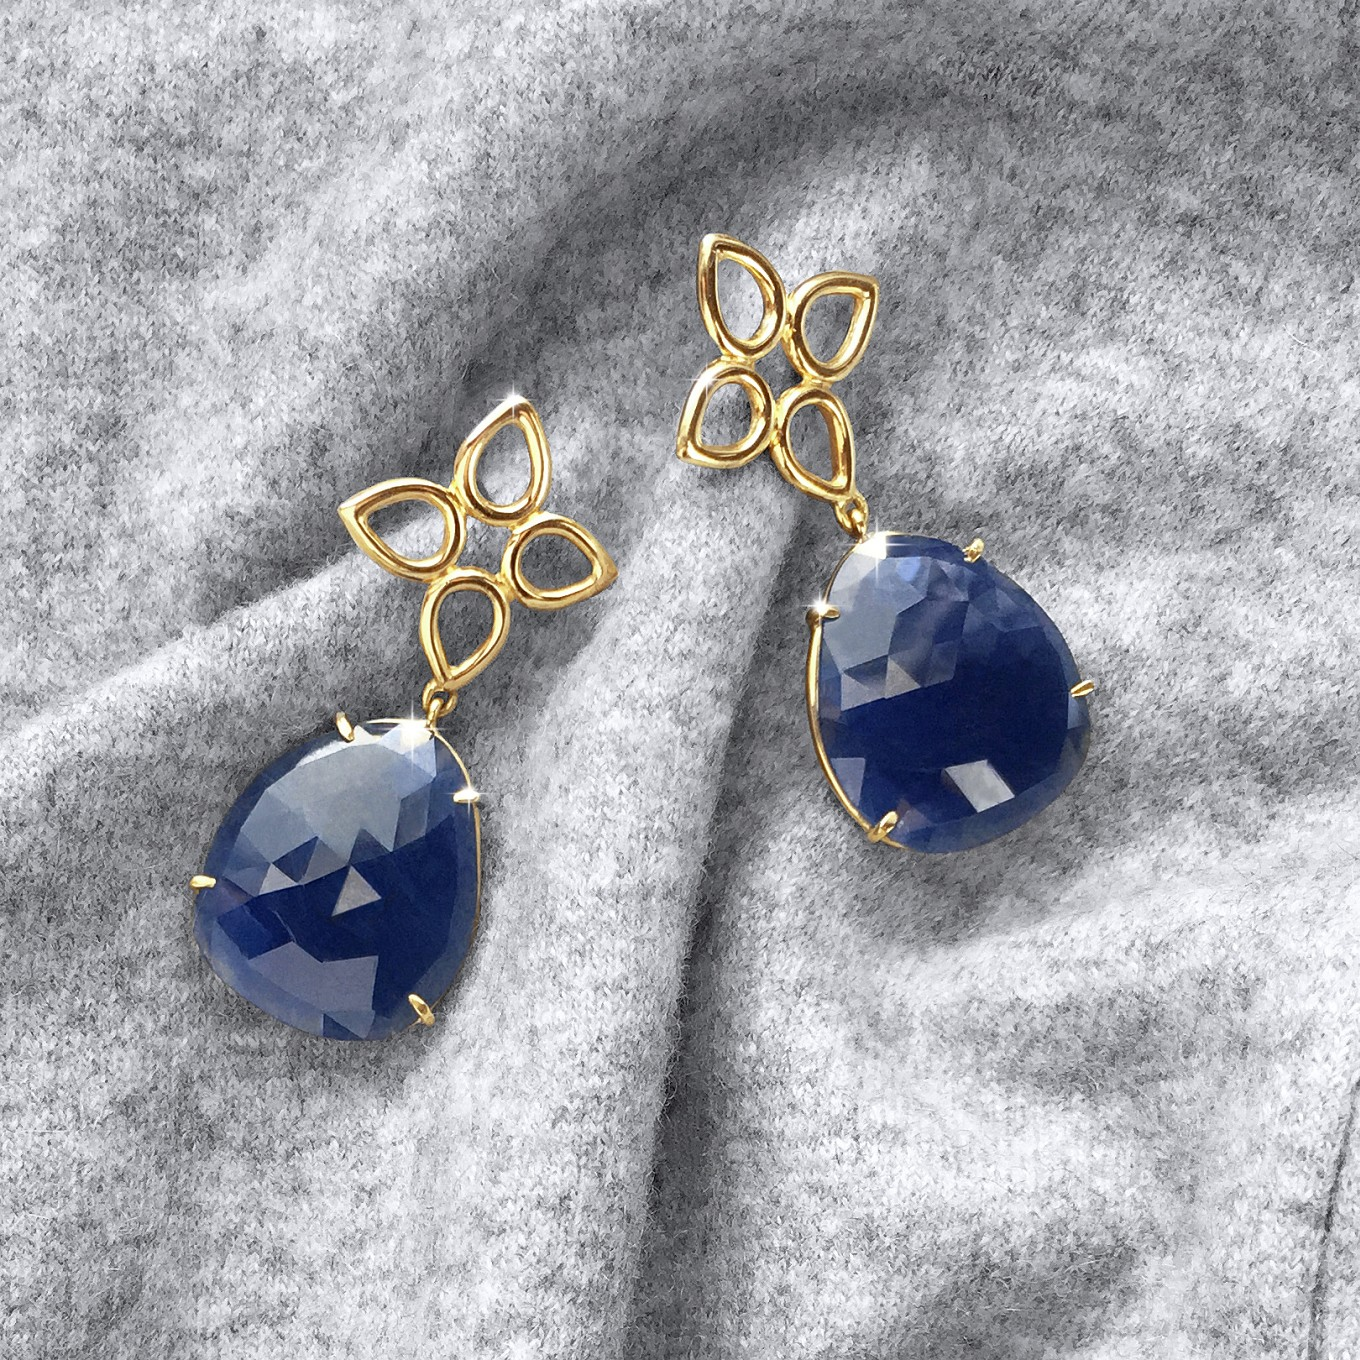 ROSE CUT SAPPHIRE & WIRE SEVILLA MOTIF EARRINGS IN YELLOW GOLD